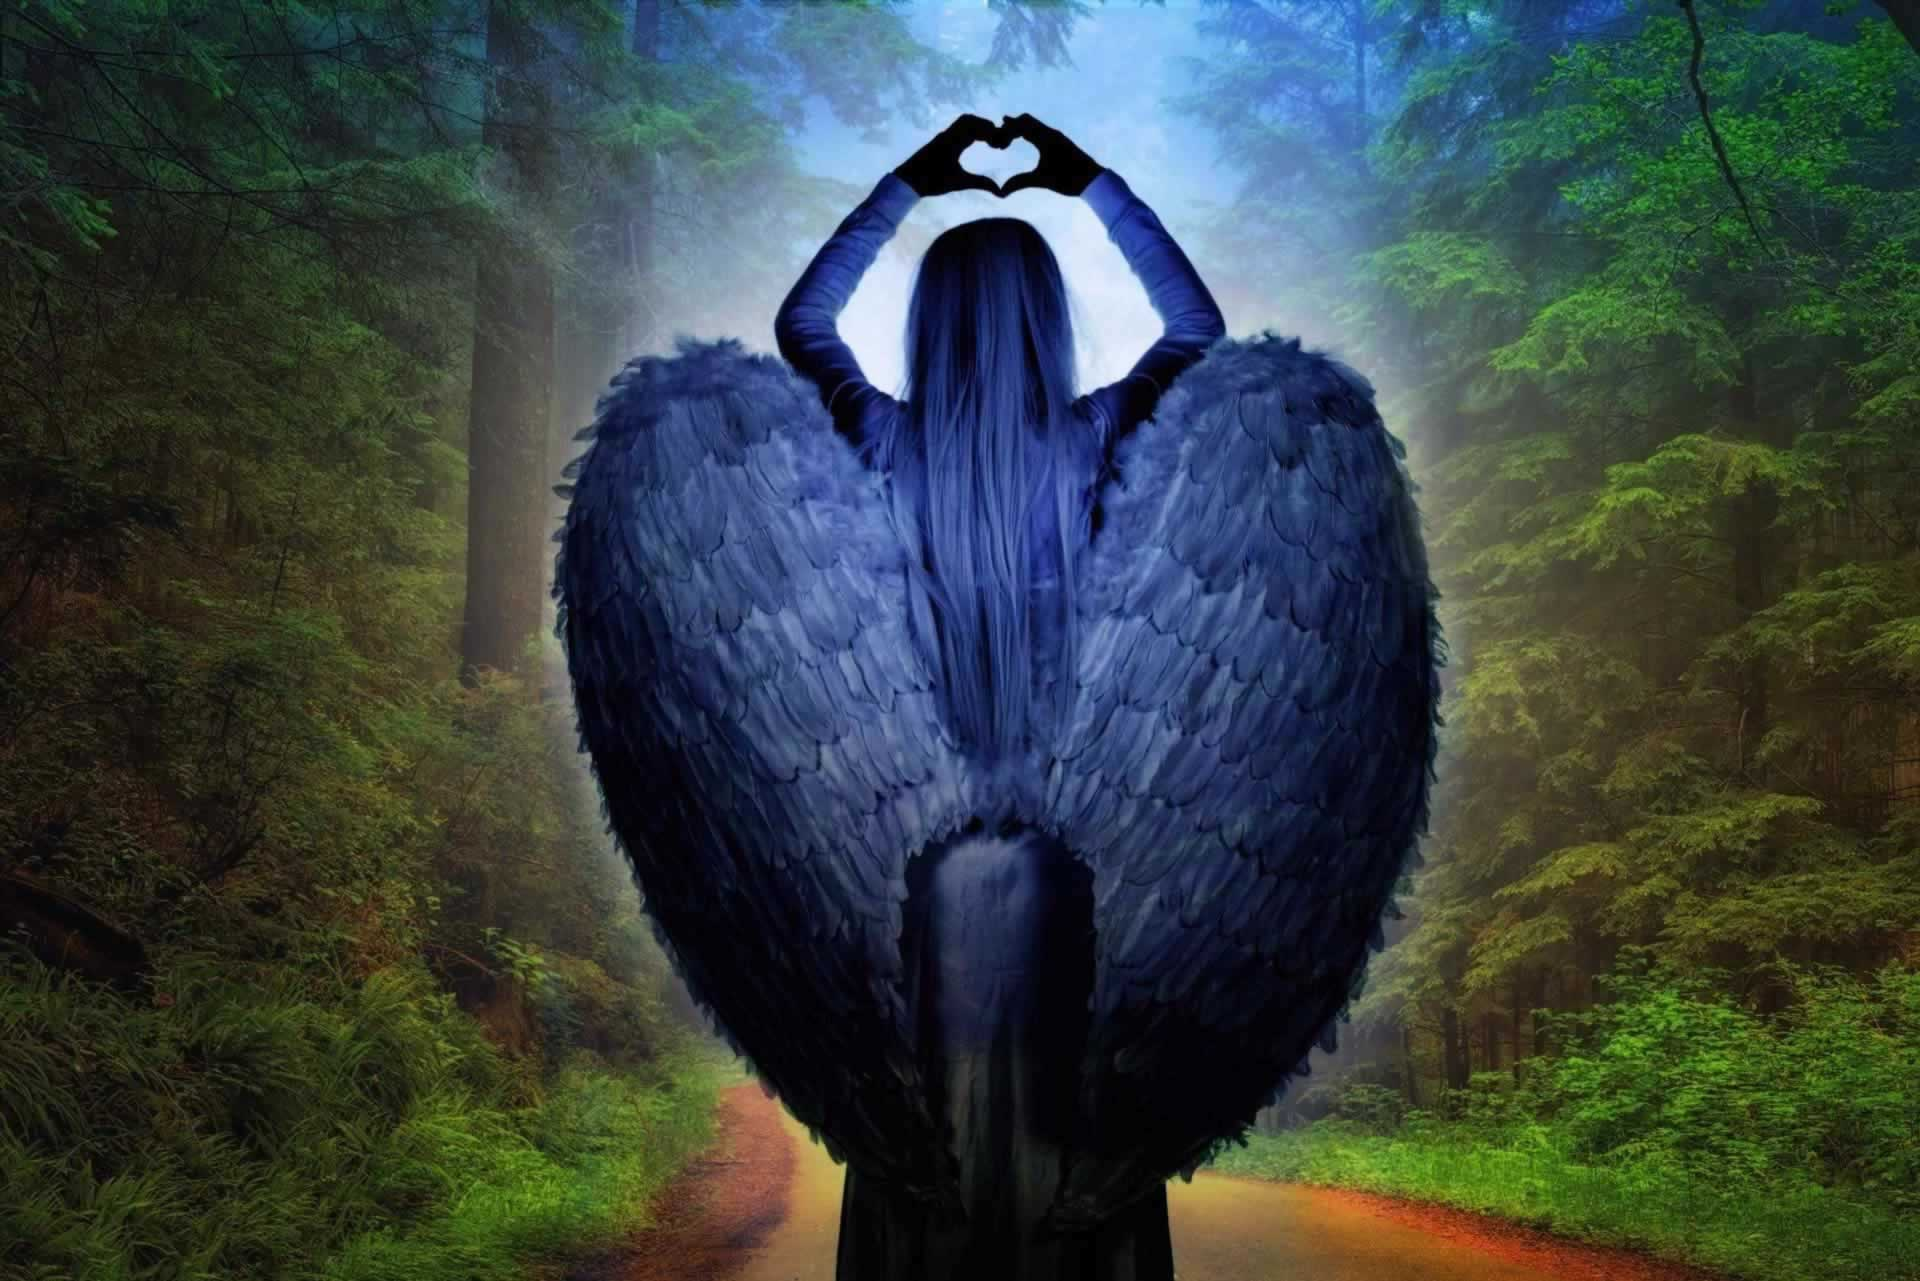 Alison's guide to starting out on your Angelic path